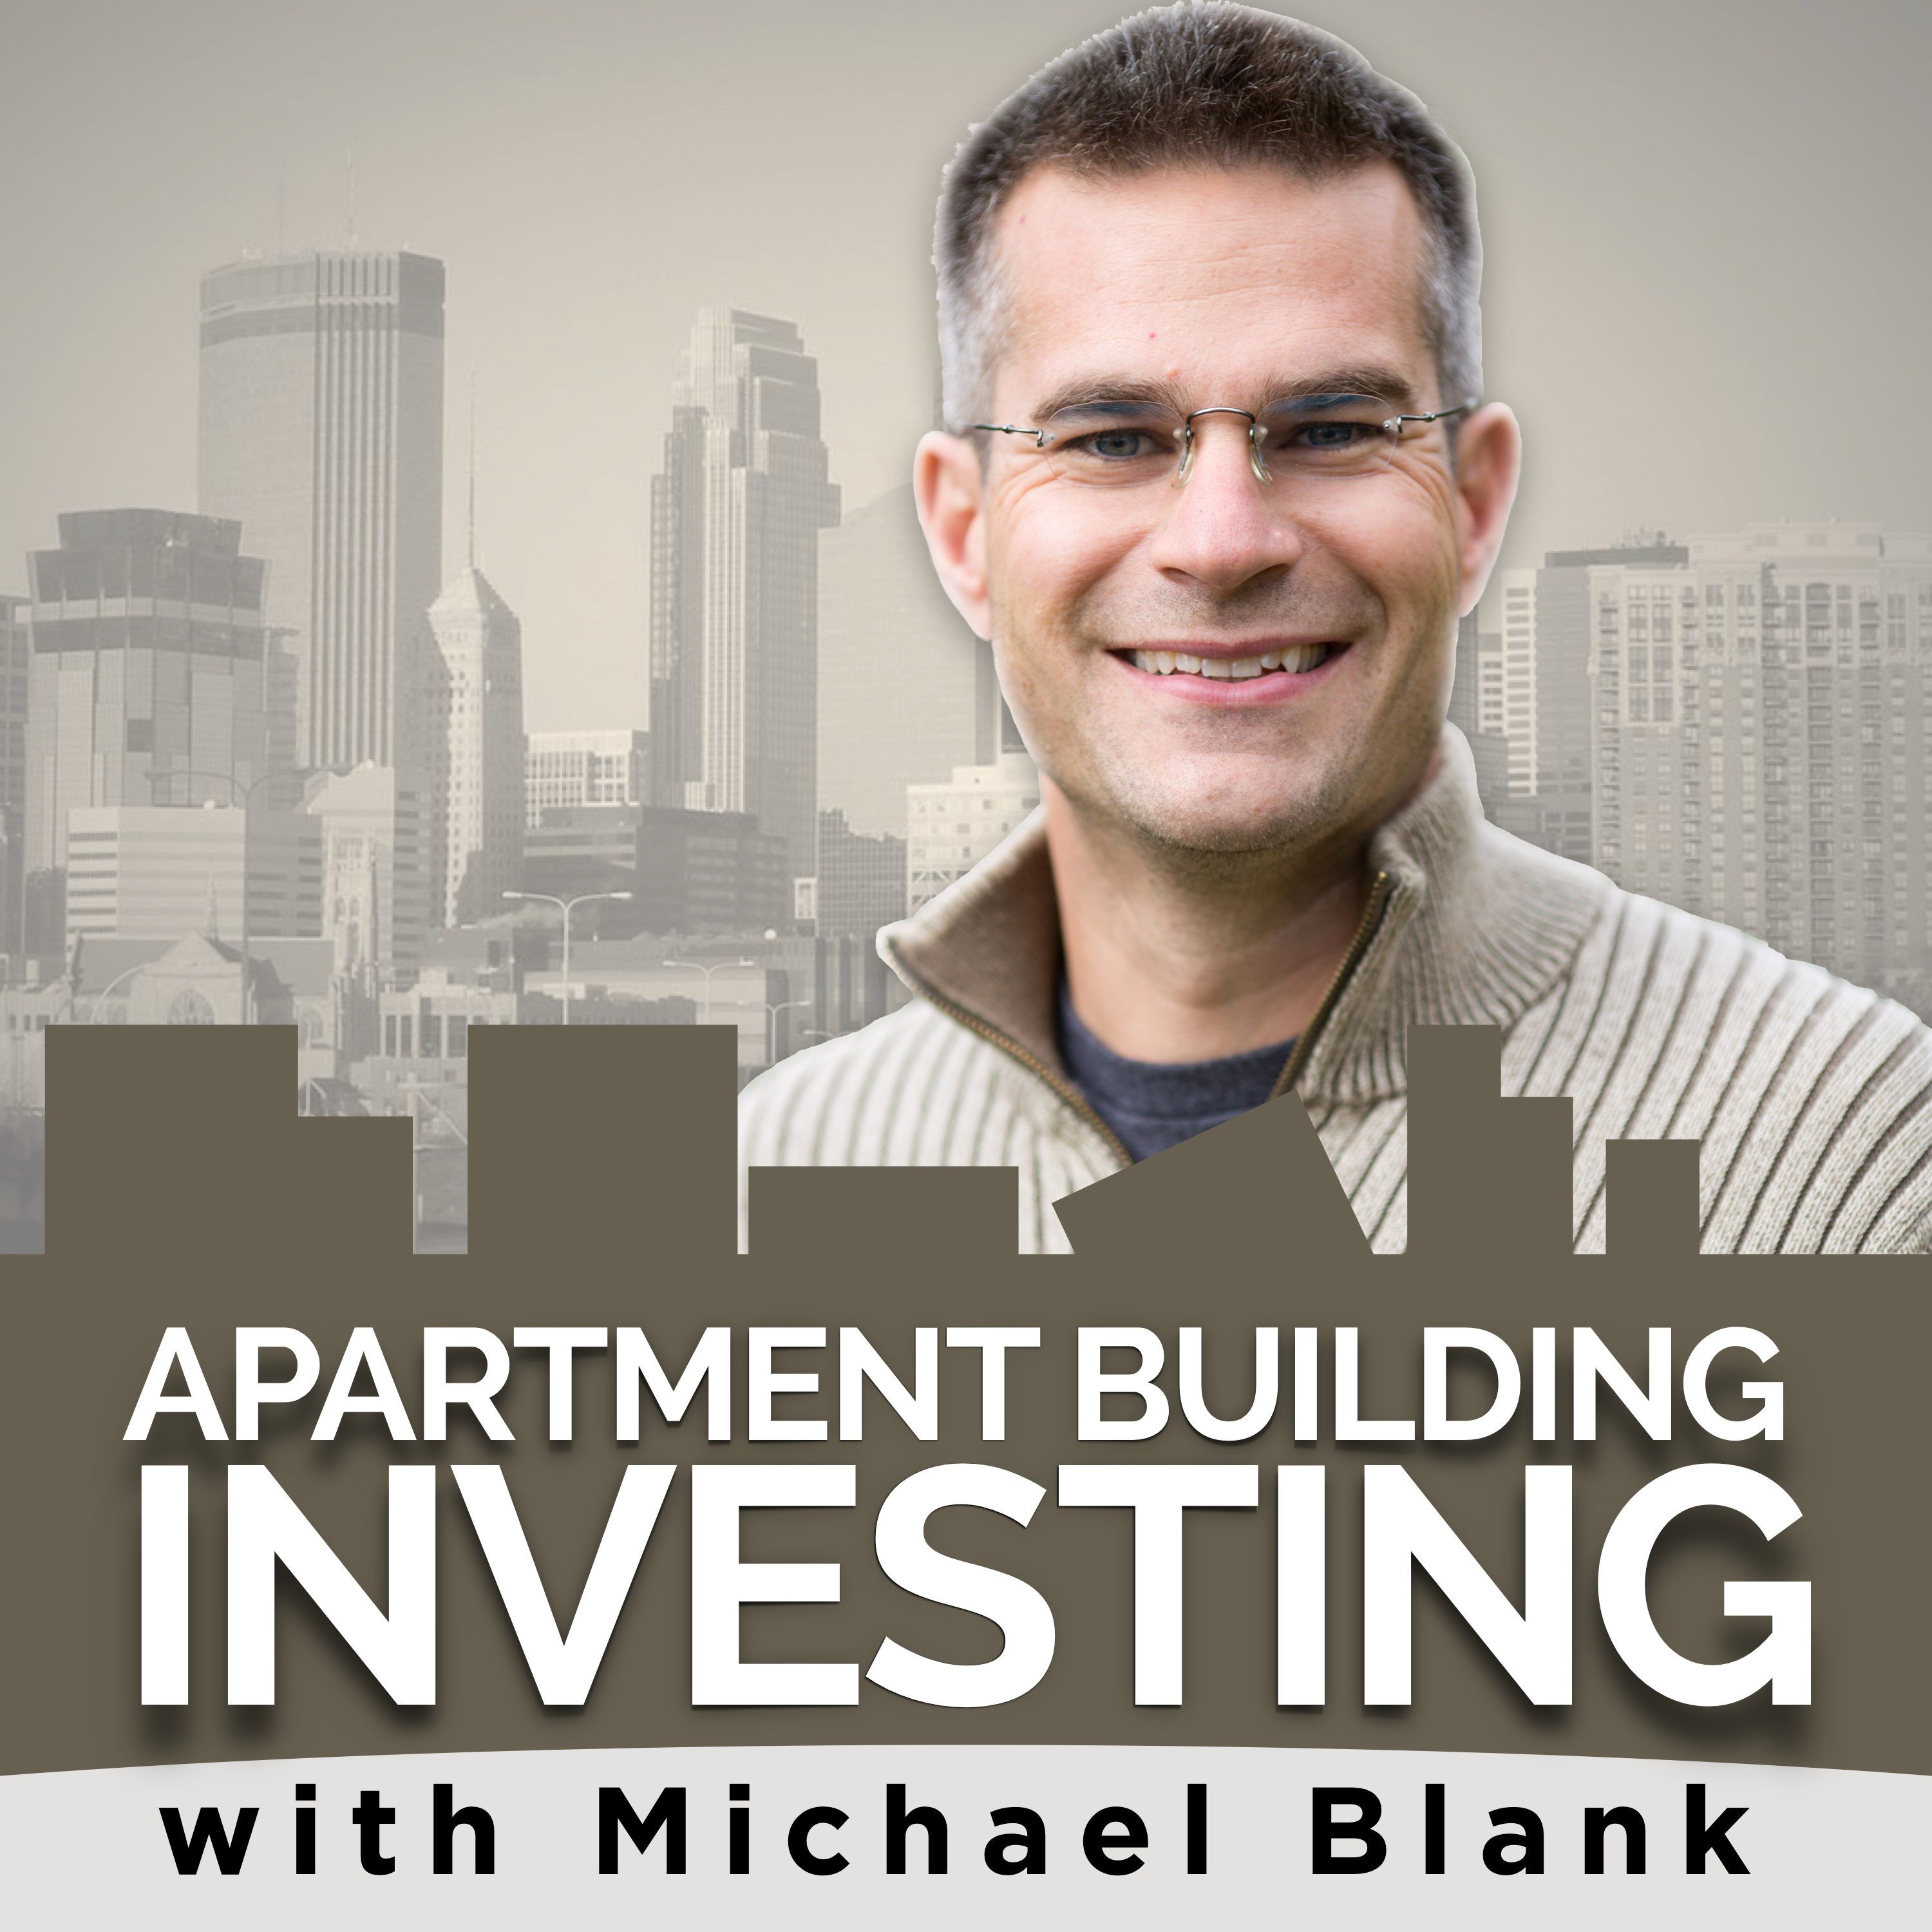 Apartment Building Investing with Michael Blank Podcast show art